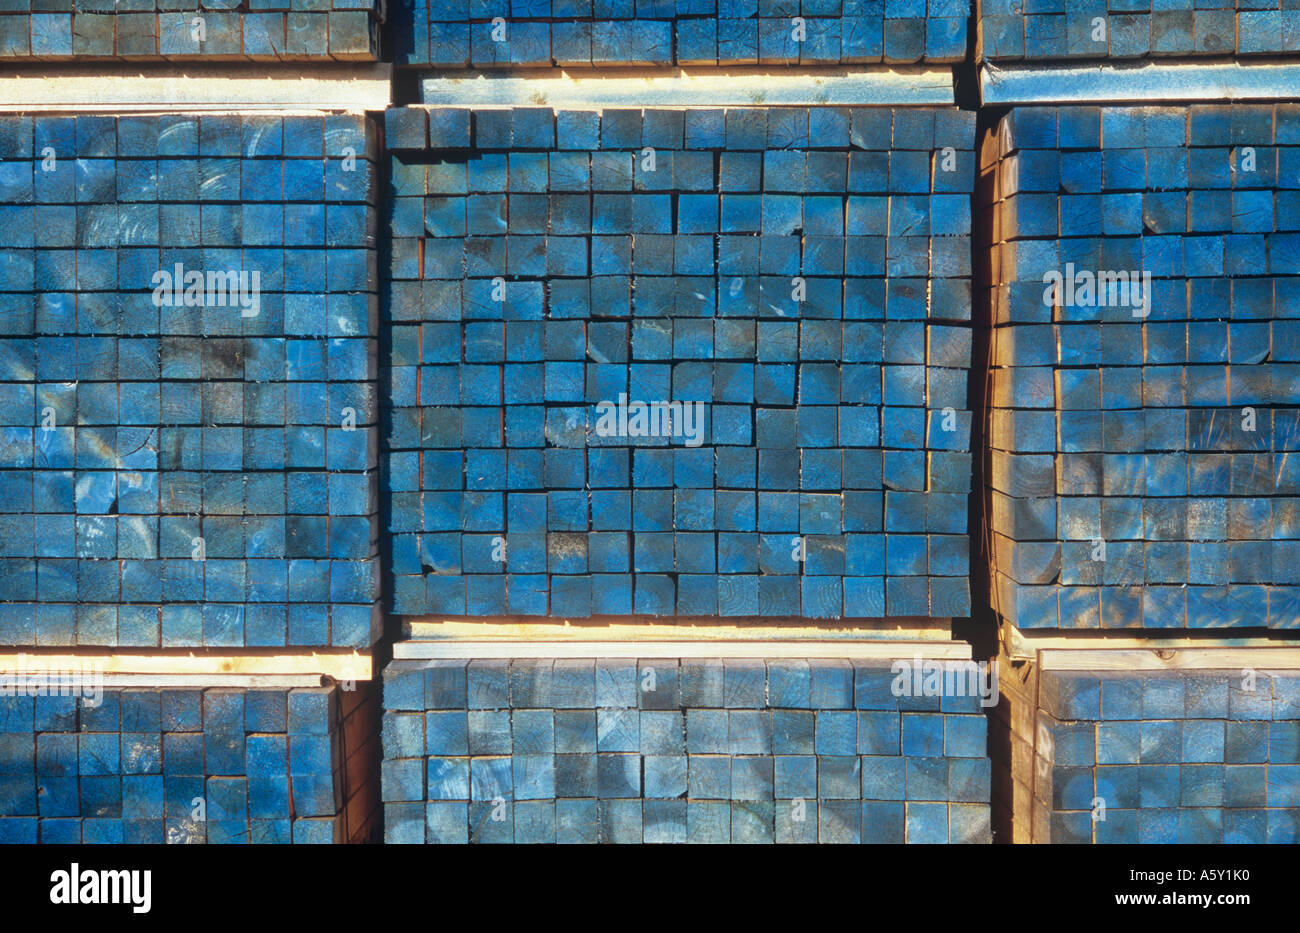 Detail of stacks of square bundled squared timber lengths treated or stained or marked with a blue dye - Stock Image